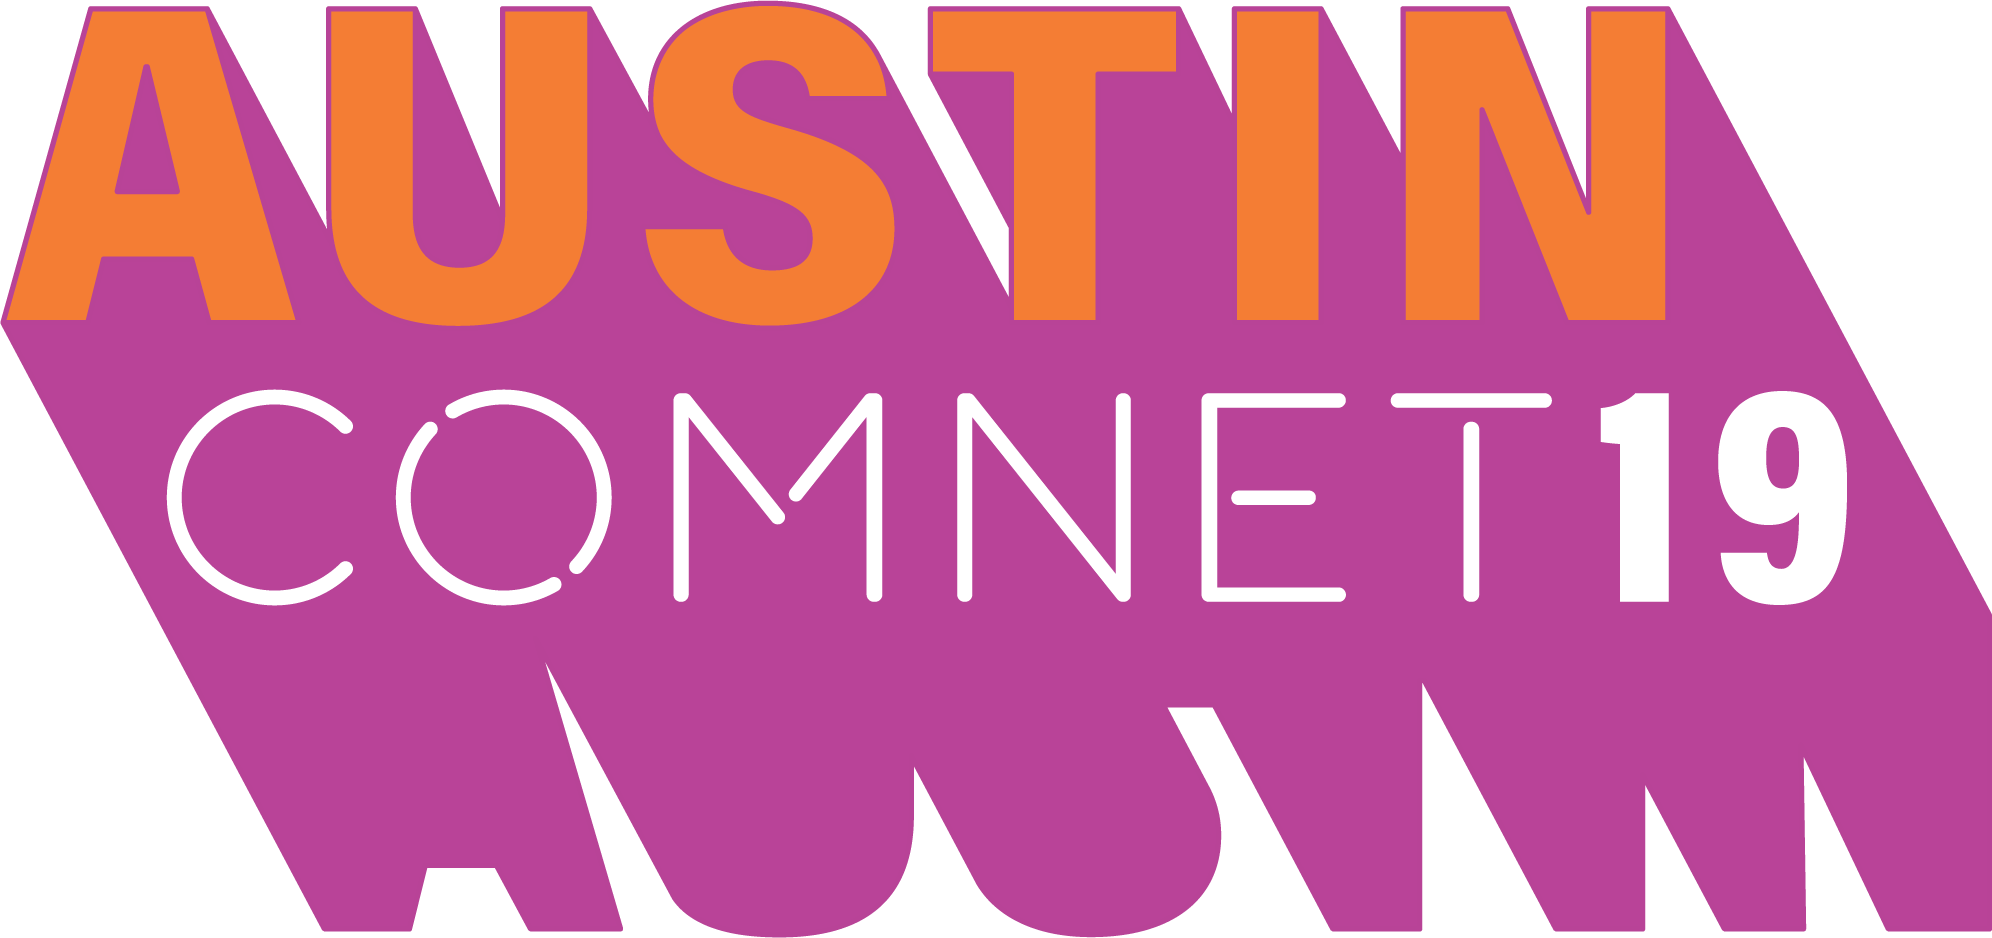 Relive the energy of ComNet19: Austin - Below, you can watch video replays, listen to the audio, or read the transcripts from all the Keynote sessions and In Conversations, as well as detailed notes from every Breakout session.